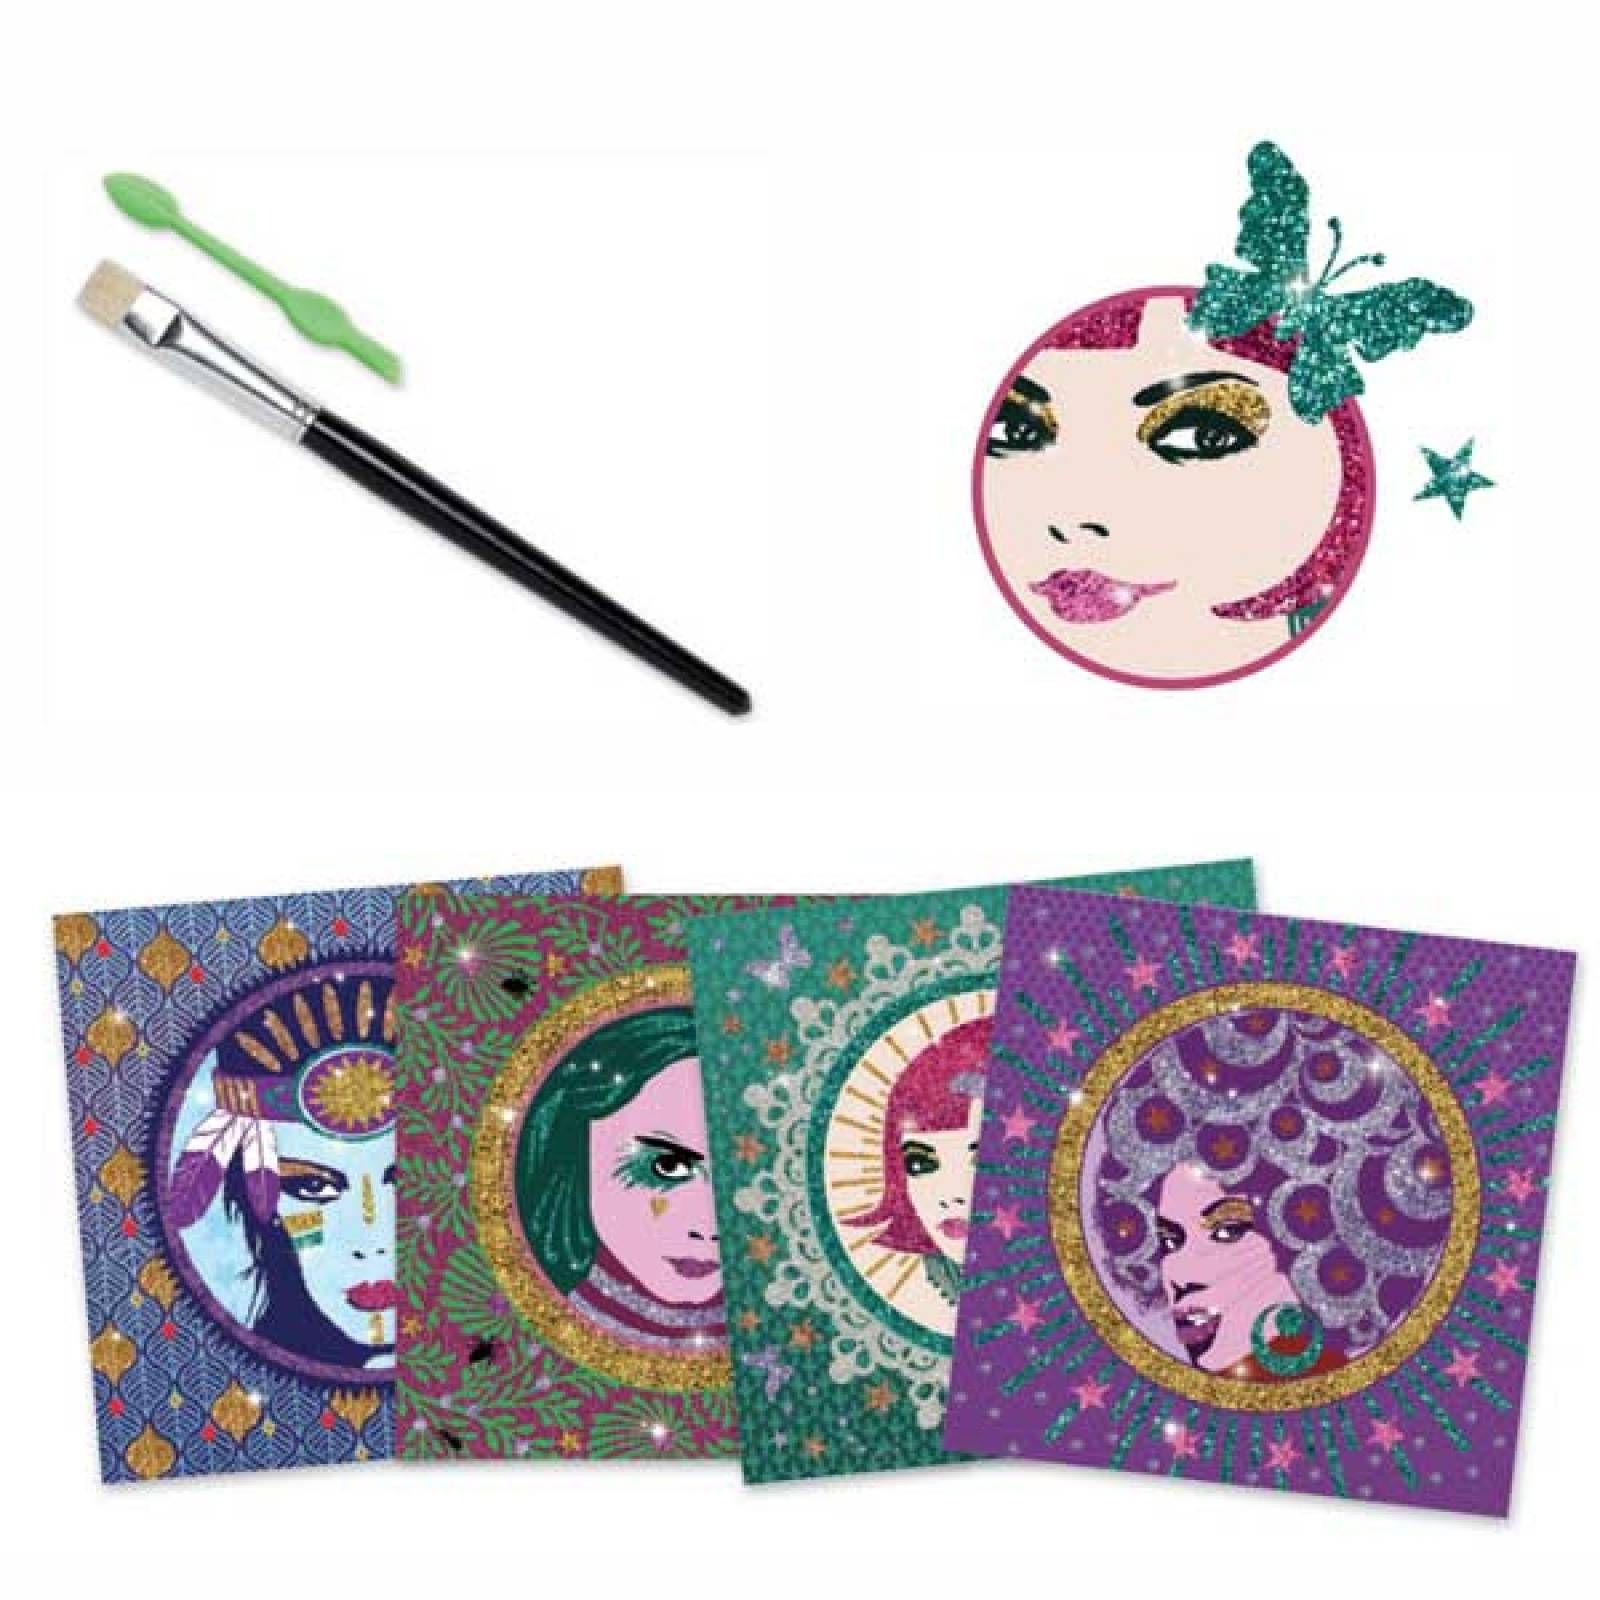 Glitter Boards Cleo Pop and Rock Art Set Djeco 9-15yrs thumbnails